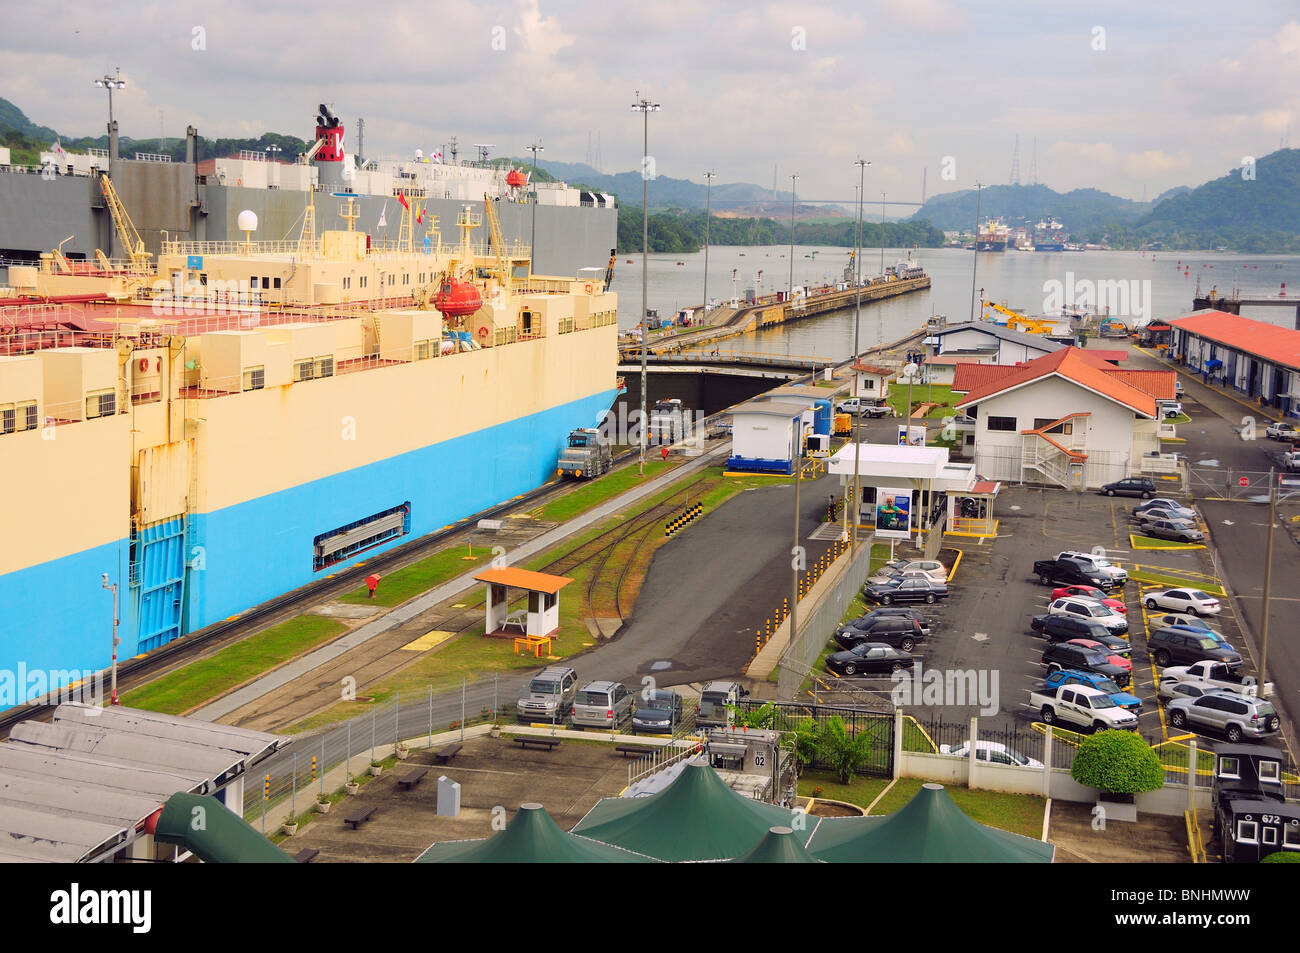 an overview of the panama canal in central america Read our panama guide to get to know the history, logistics, highlights, weather, and culture of this central american country.